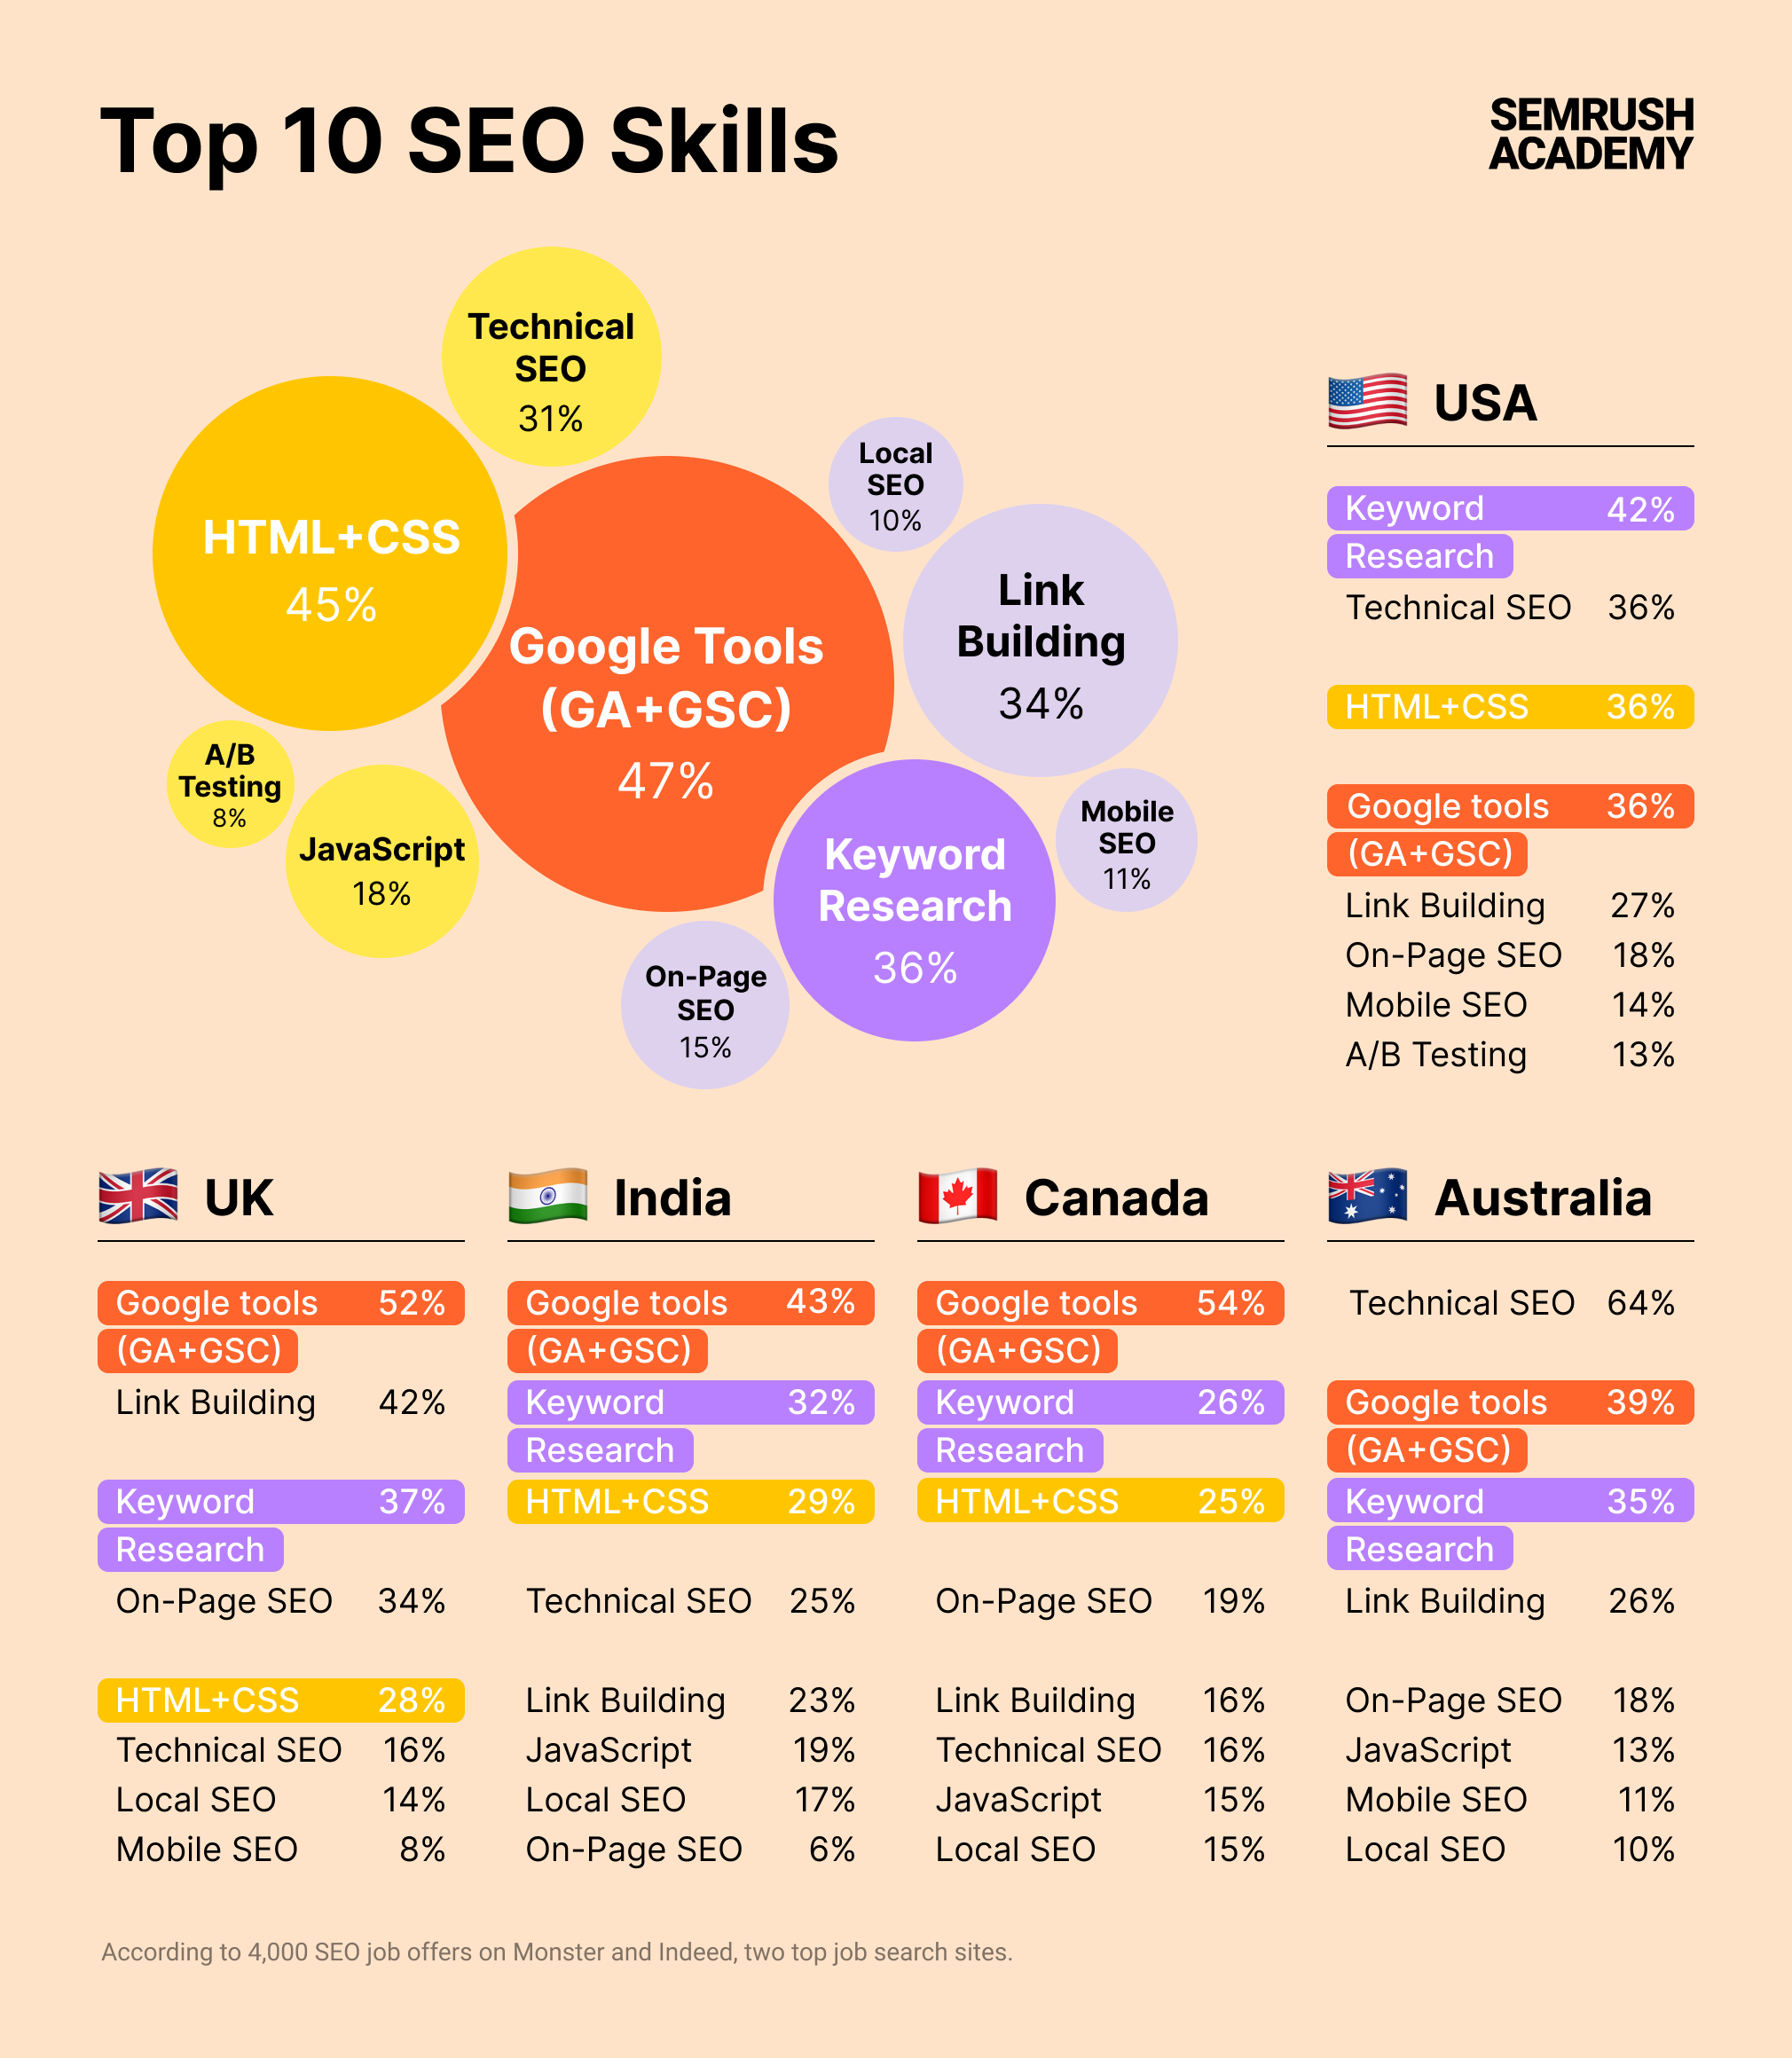 SEMrush Top 10 SEO Skills Infographic